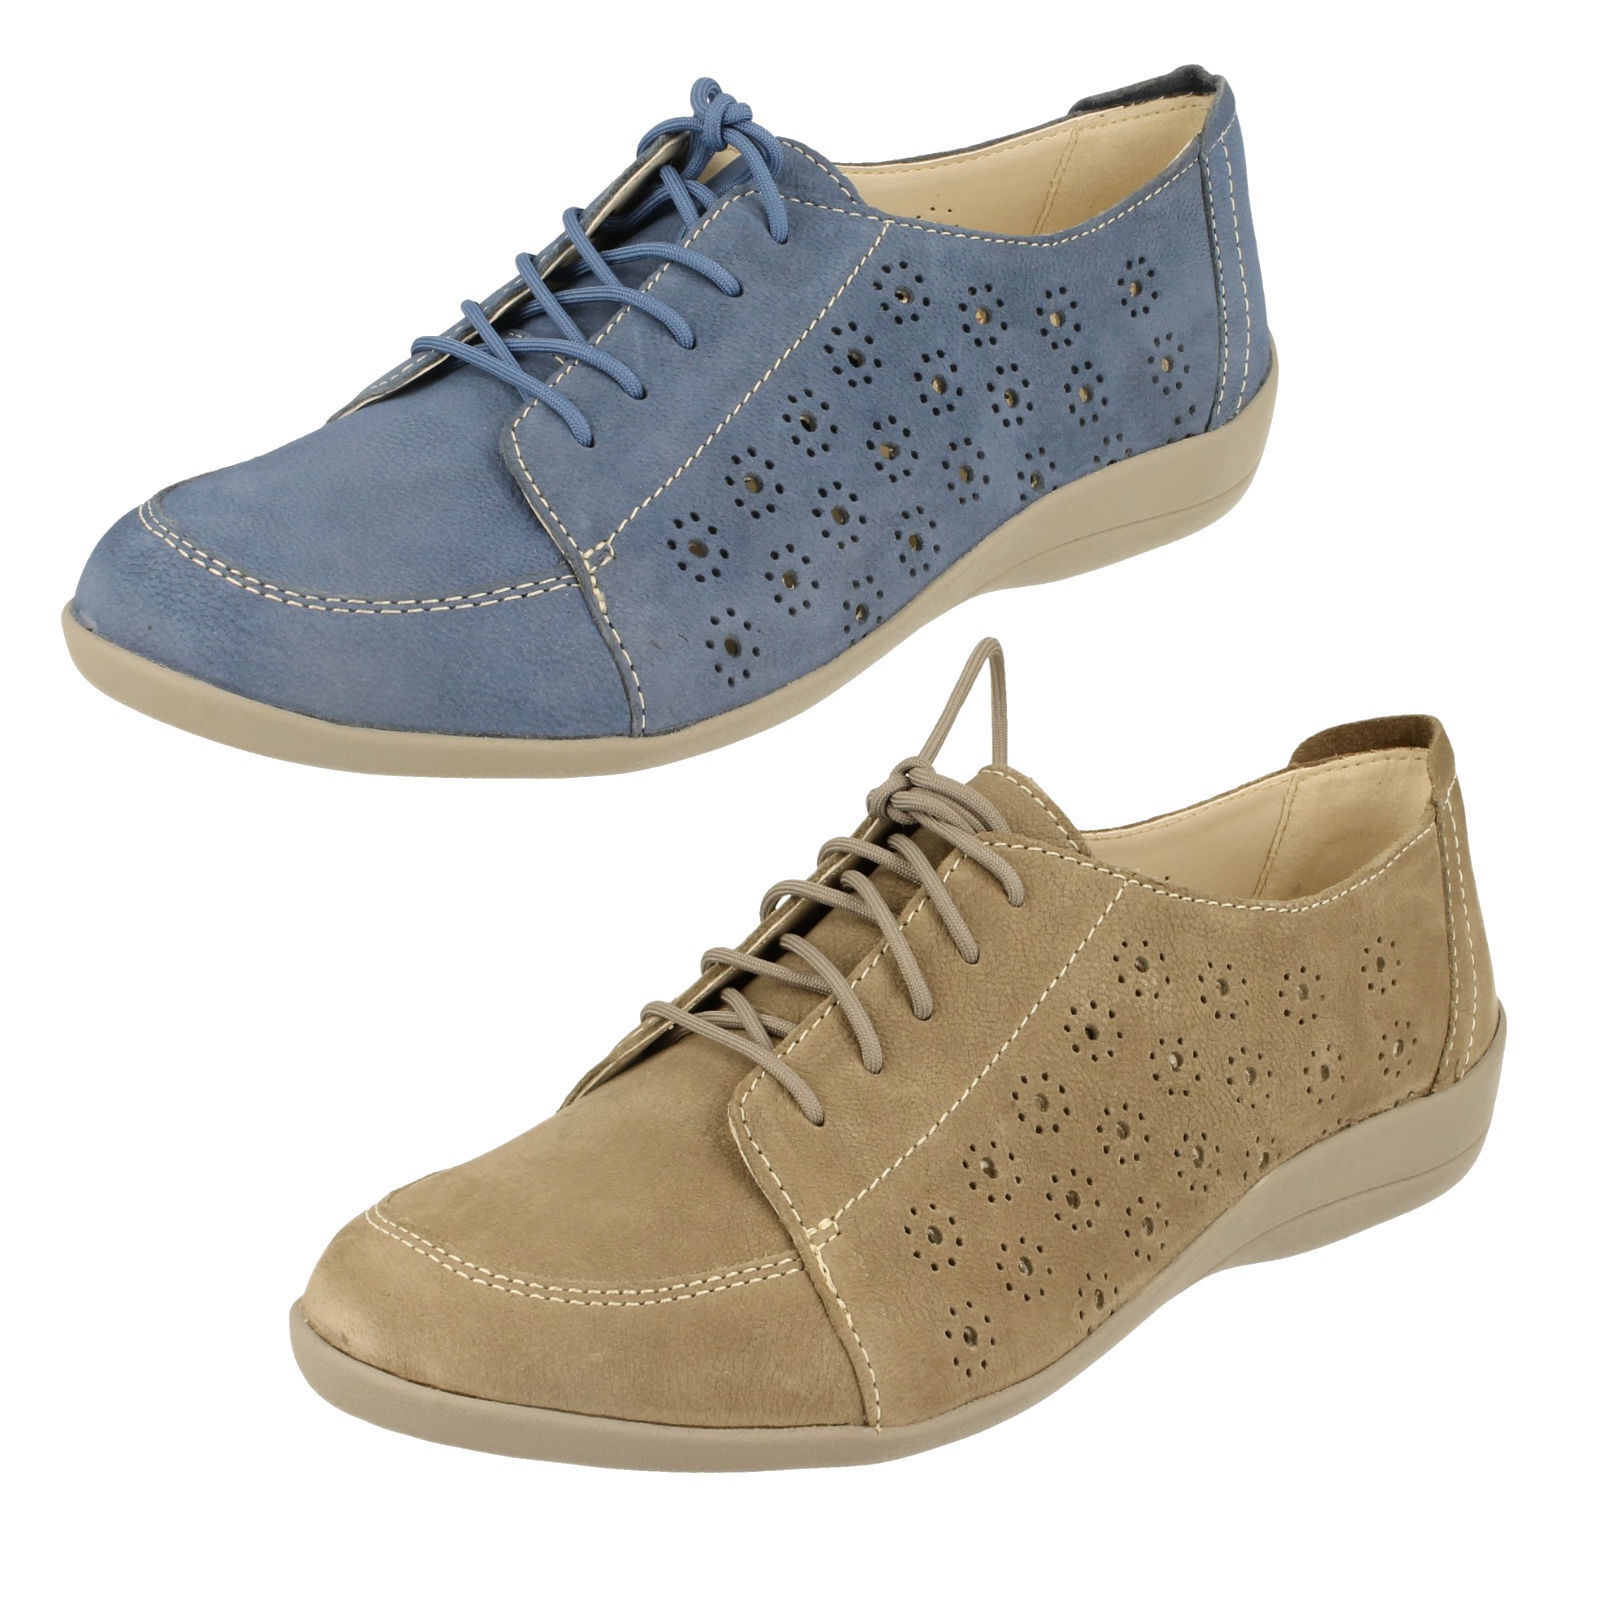 Ladies Padders Padders Ladies Extra Wide Fitting Shoes - Darcy 905461